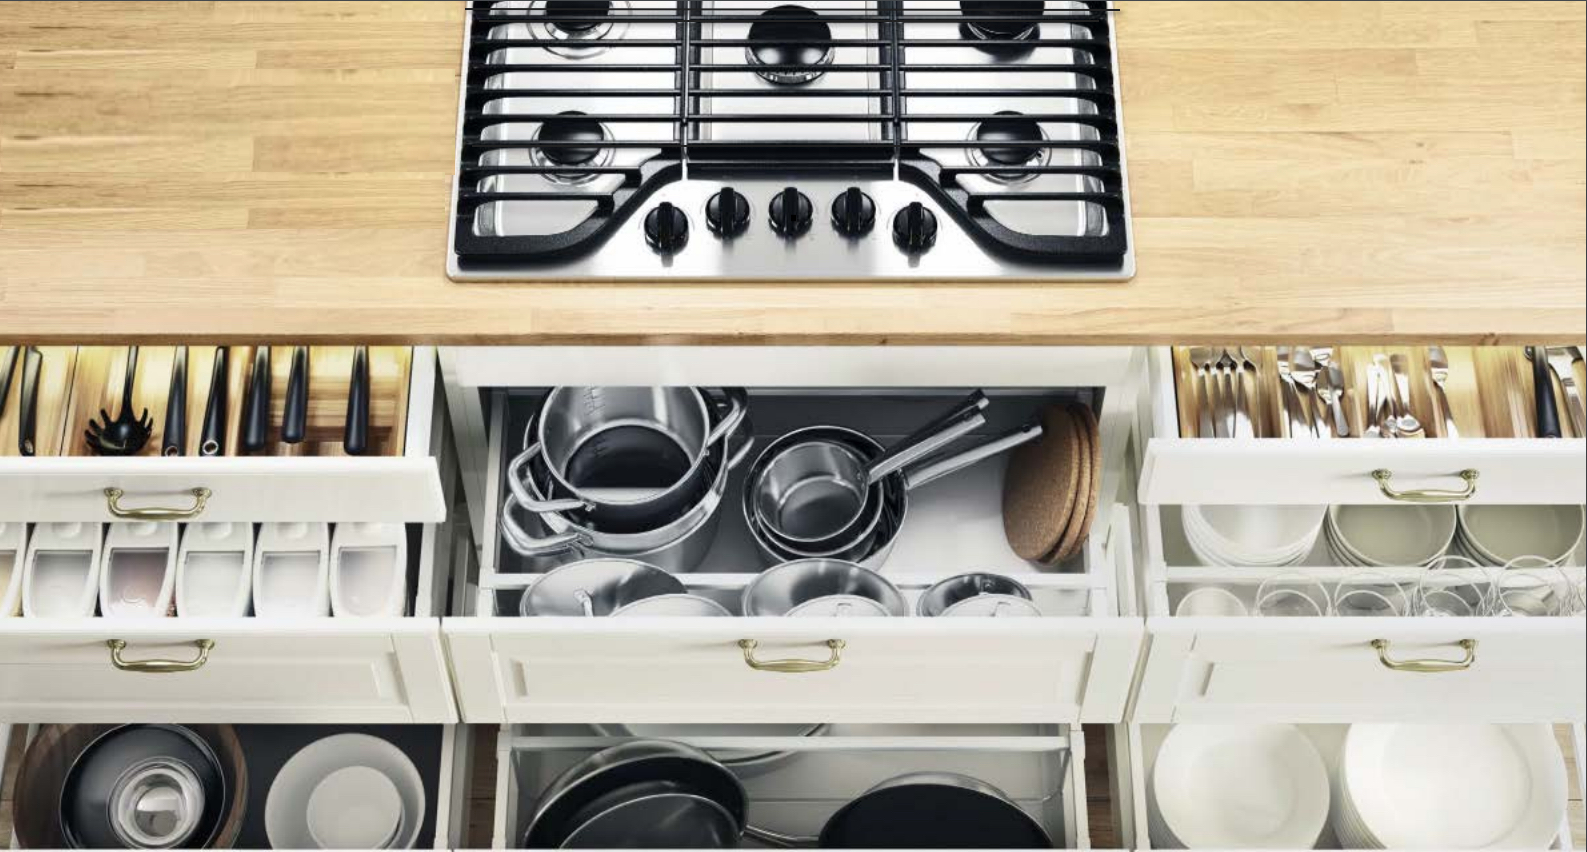 Kitchen Cabinet Organizers Ikea Renov8or: IKEA Kitchens: Planning Your SEKTION CabiOrganizers